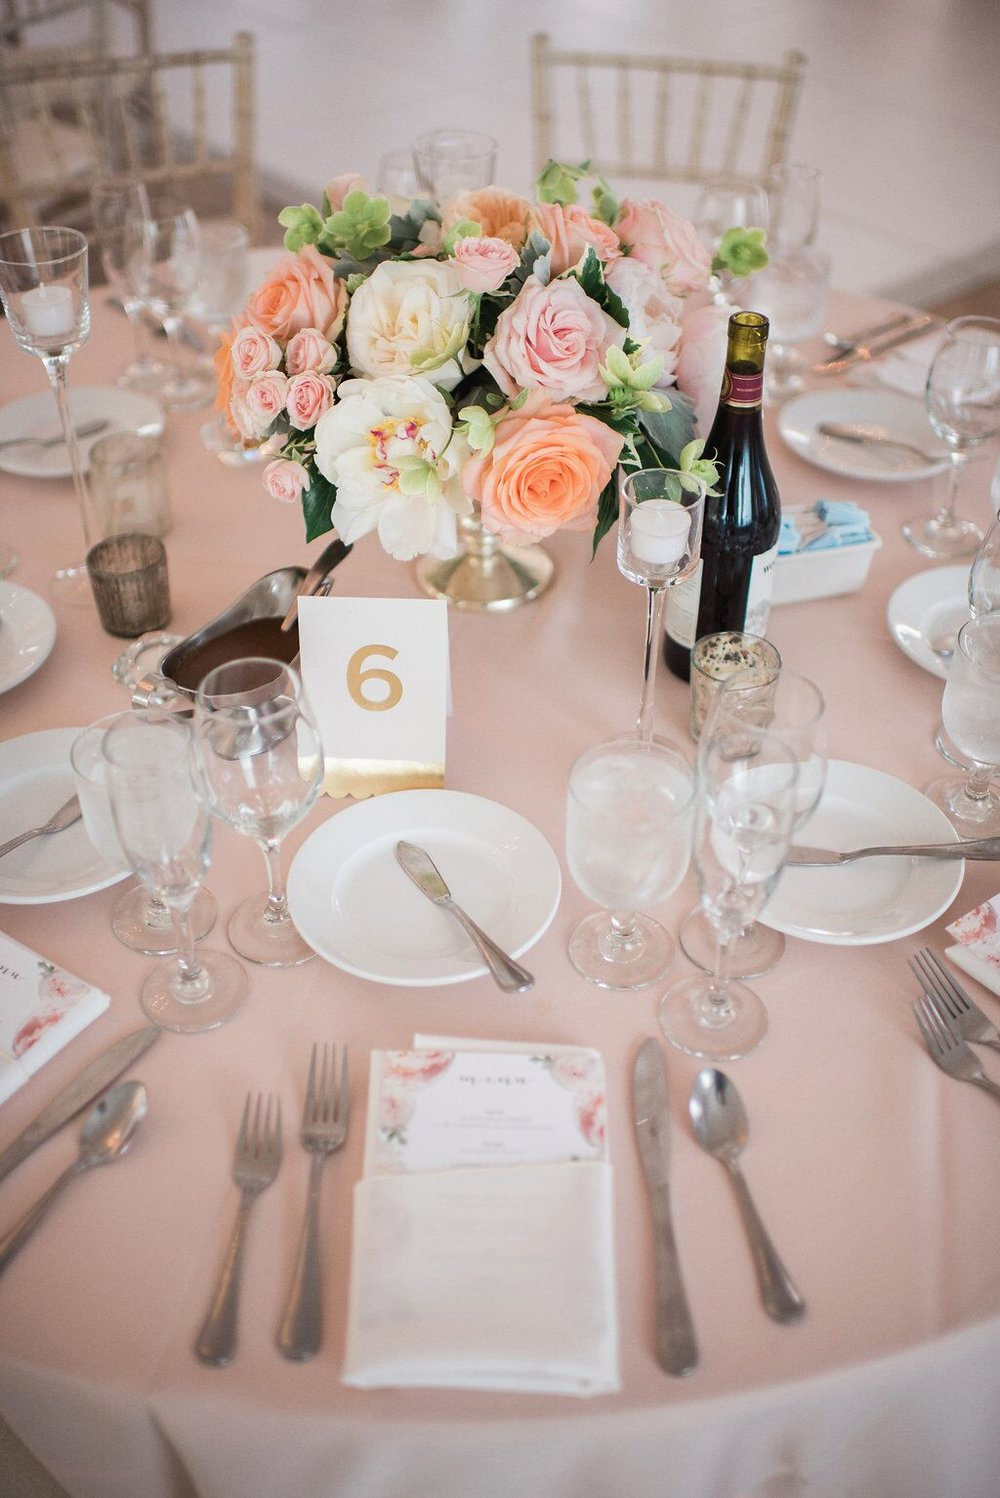 White and Blush Table Setting